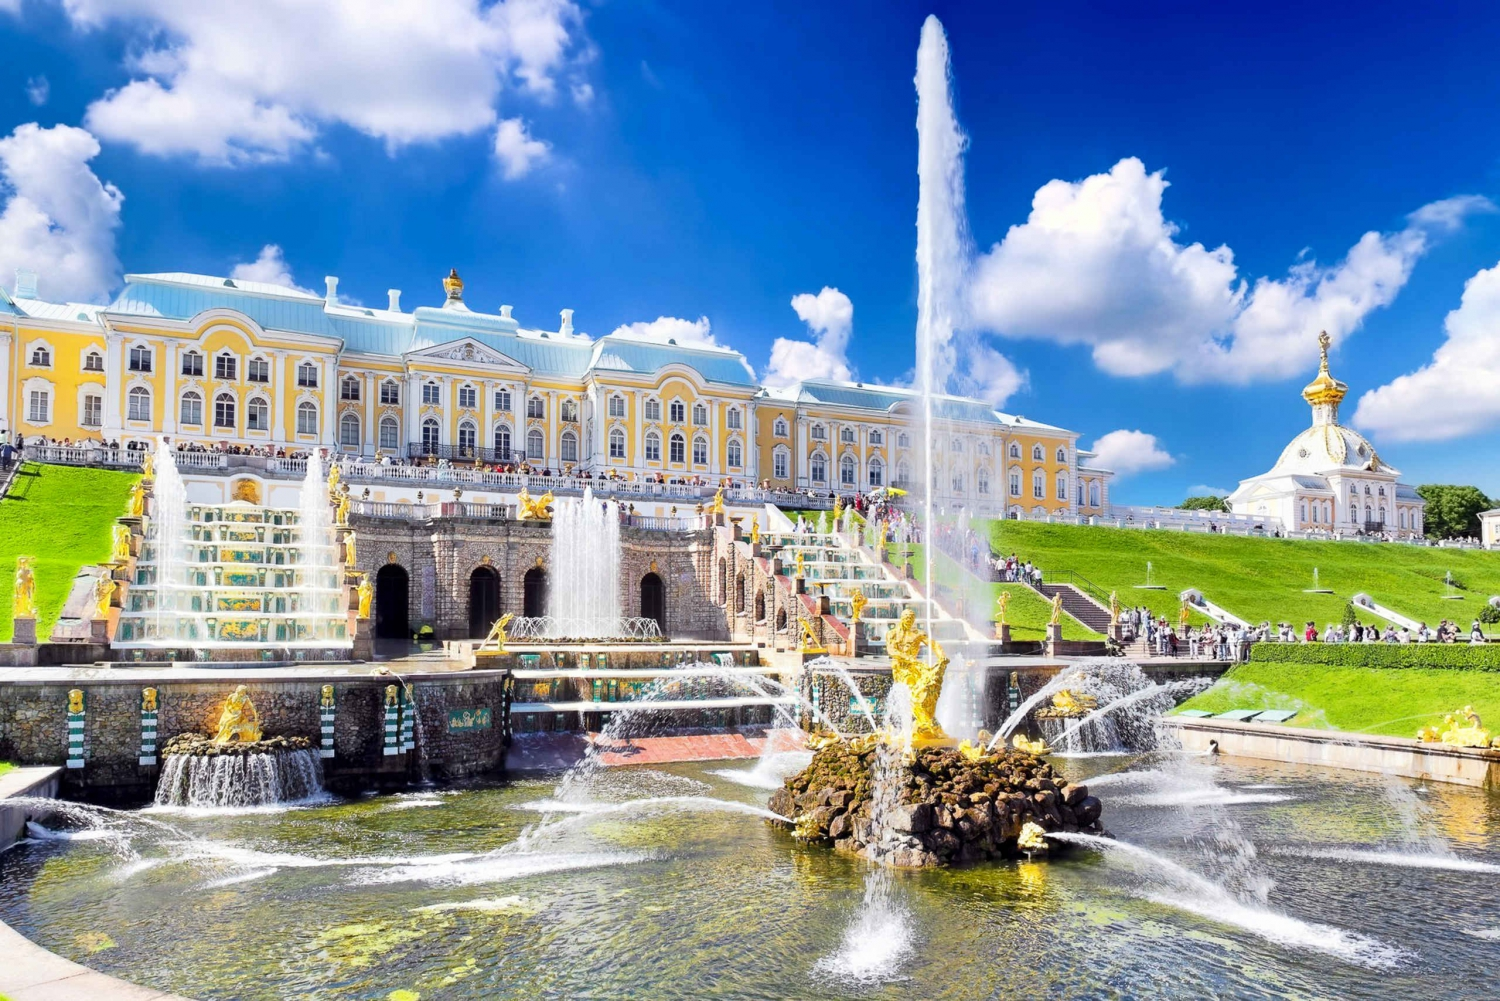 Private Peterhof Palace Tour with Pick-Up